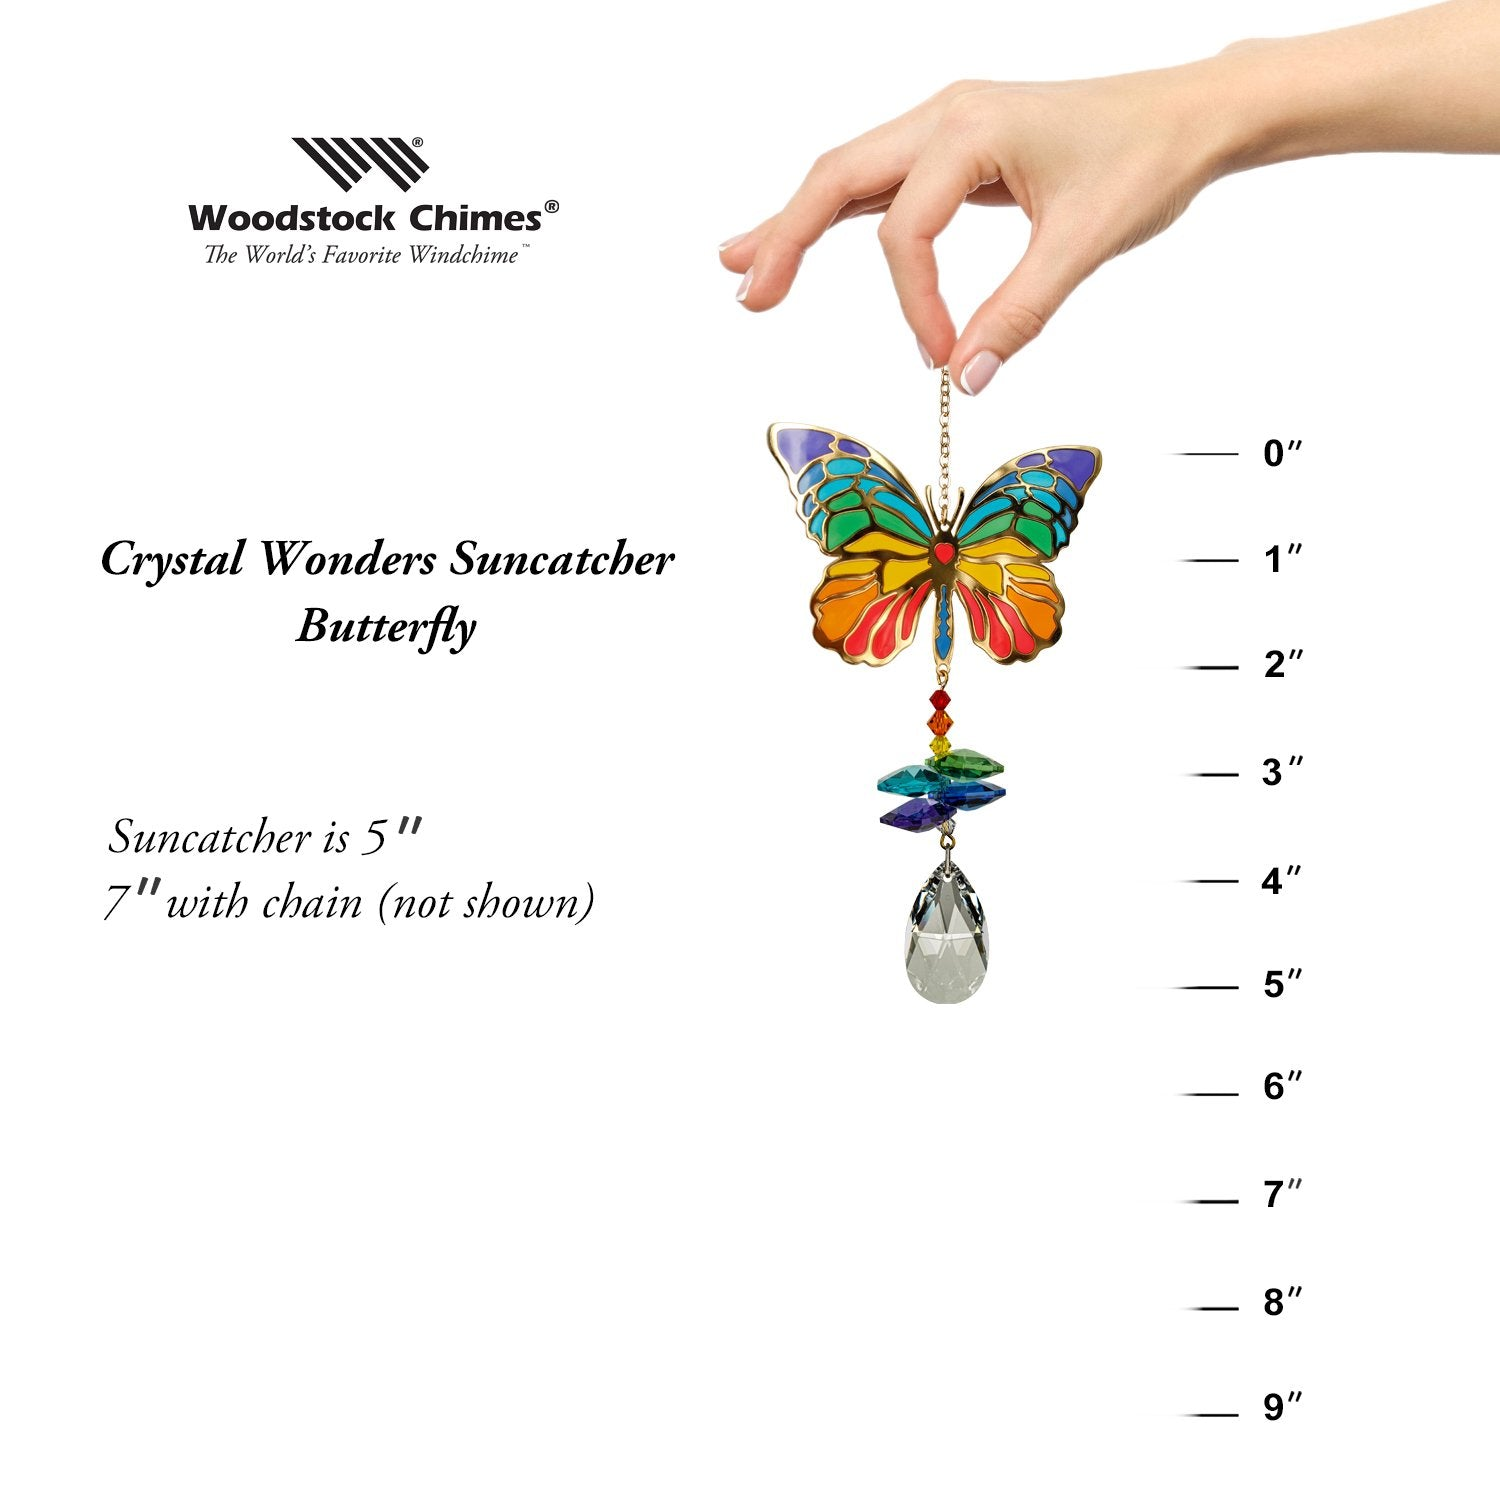 Crystal Wonders - Butterfly proportion image